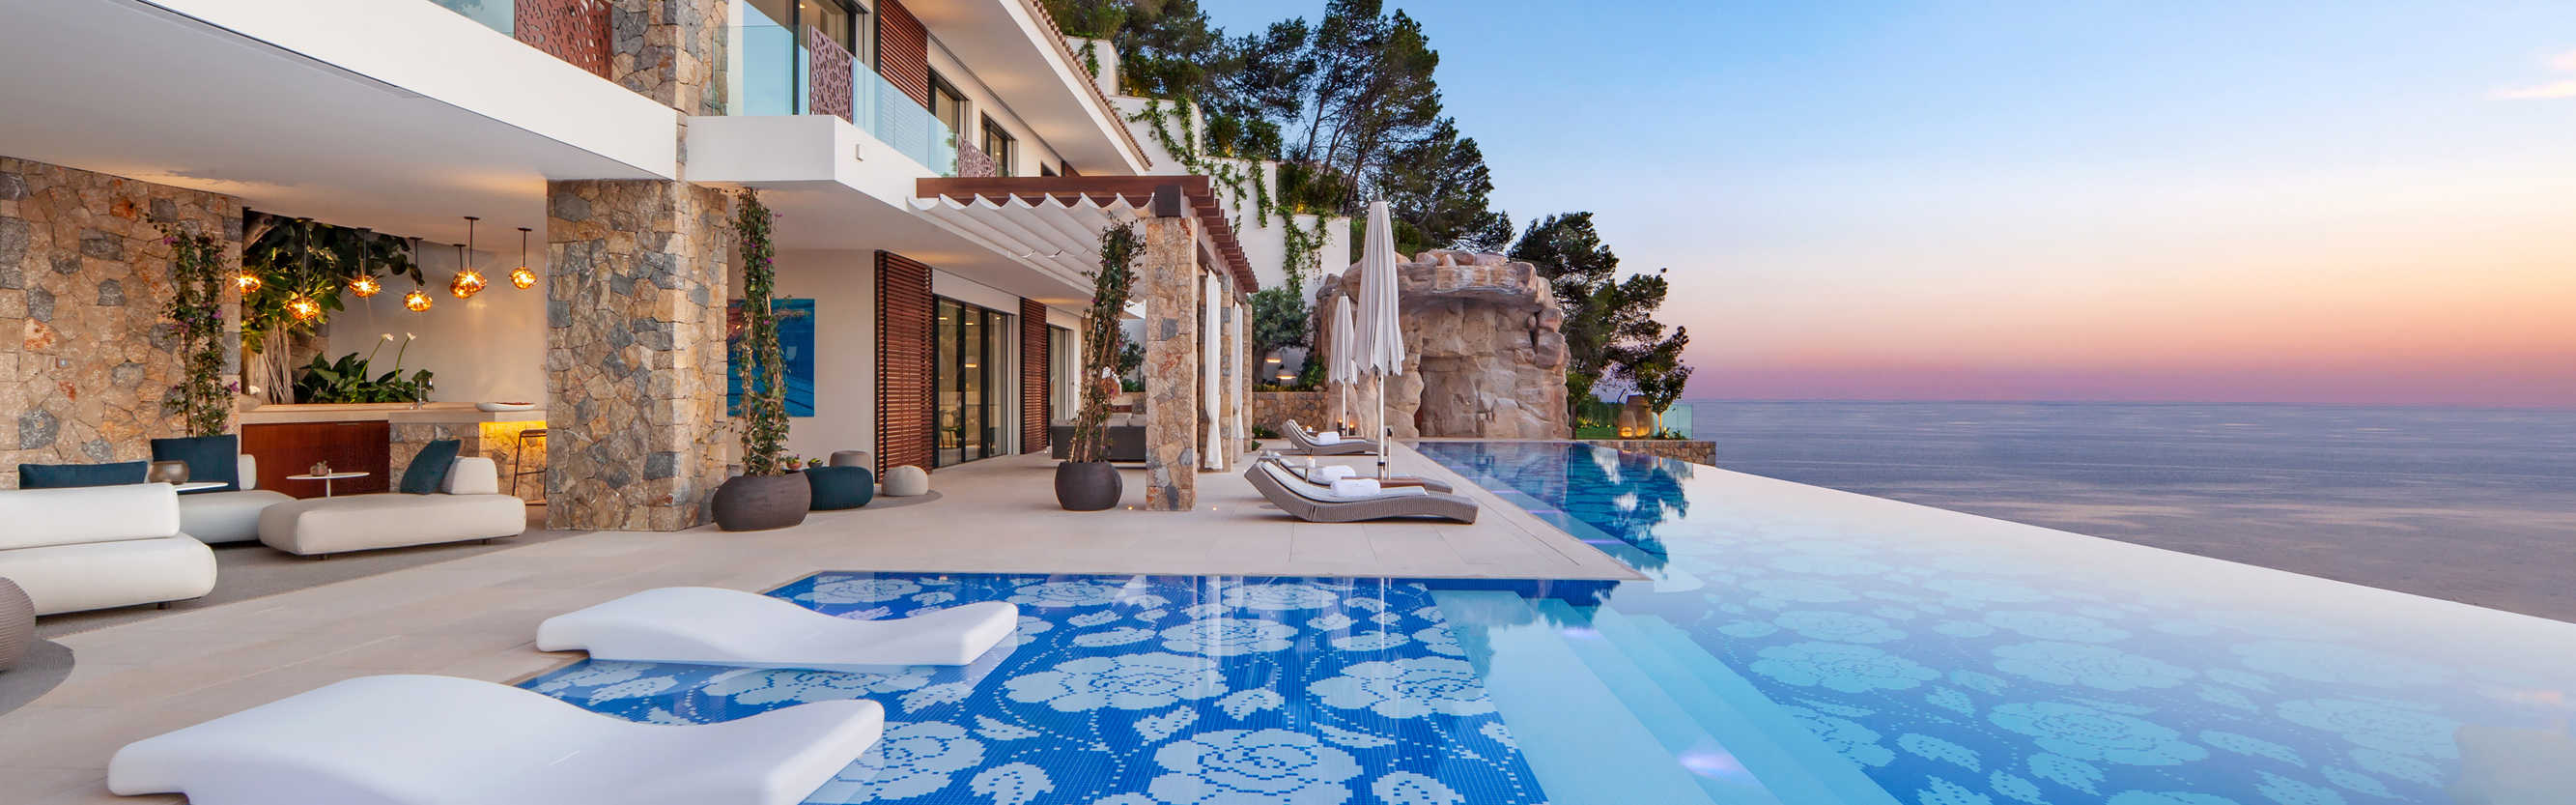 Balearen, Spanien - Villa Cloud in Port Andratx, Mallorca